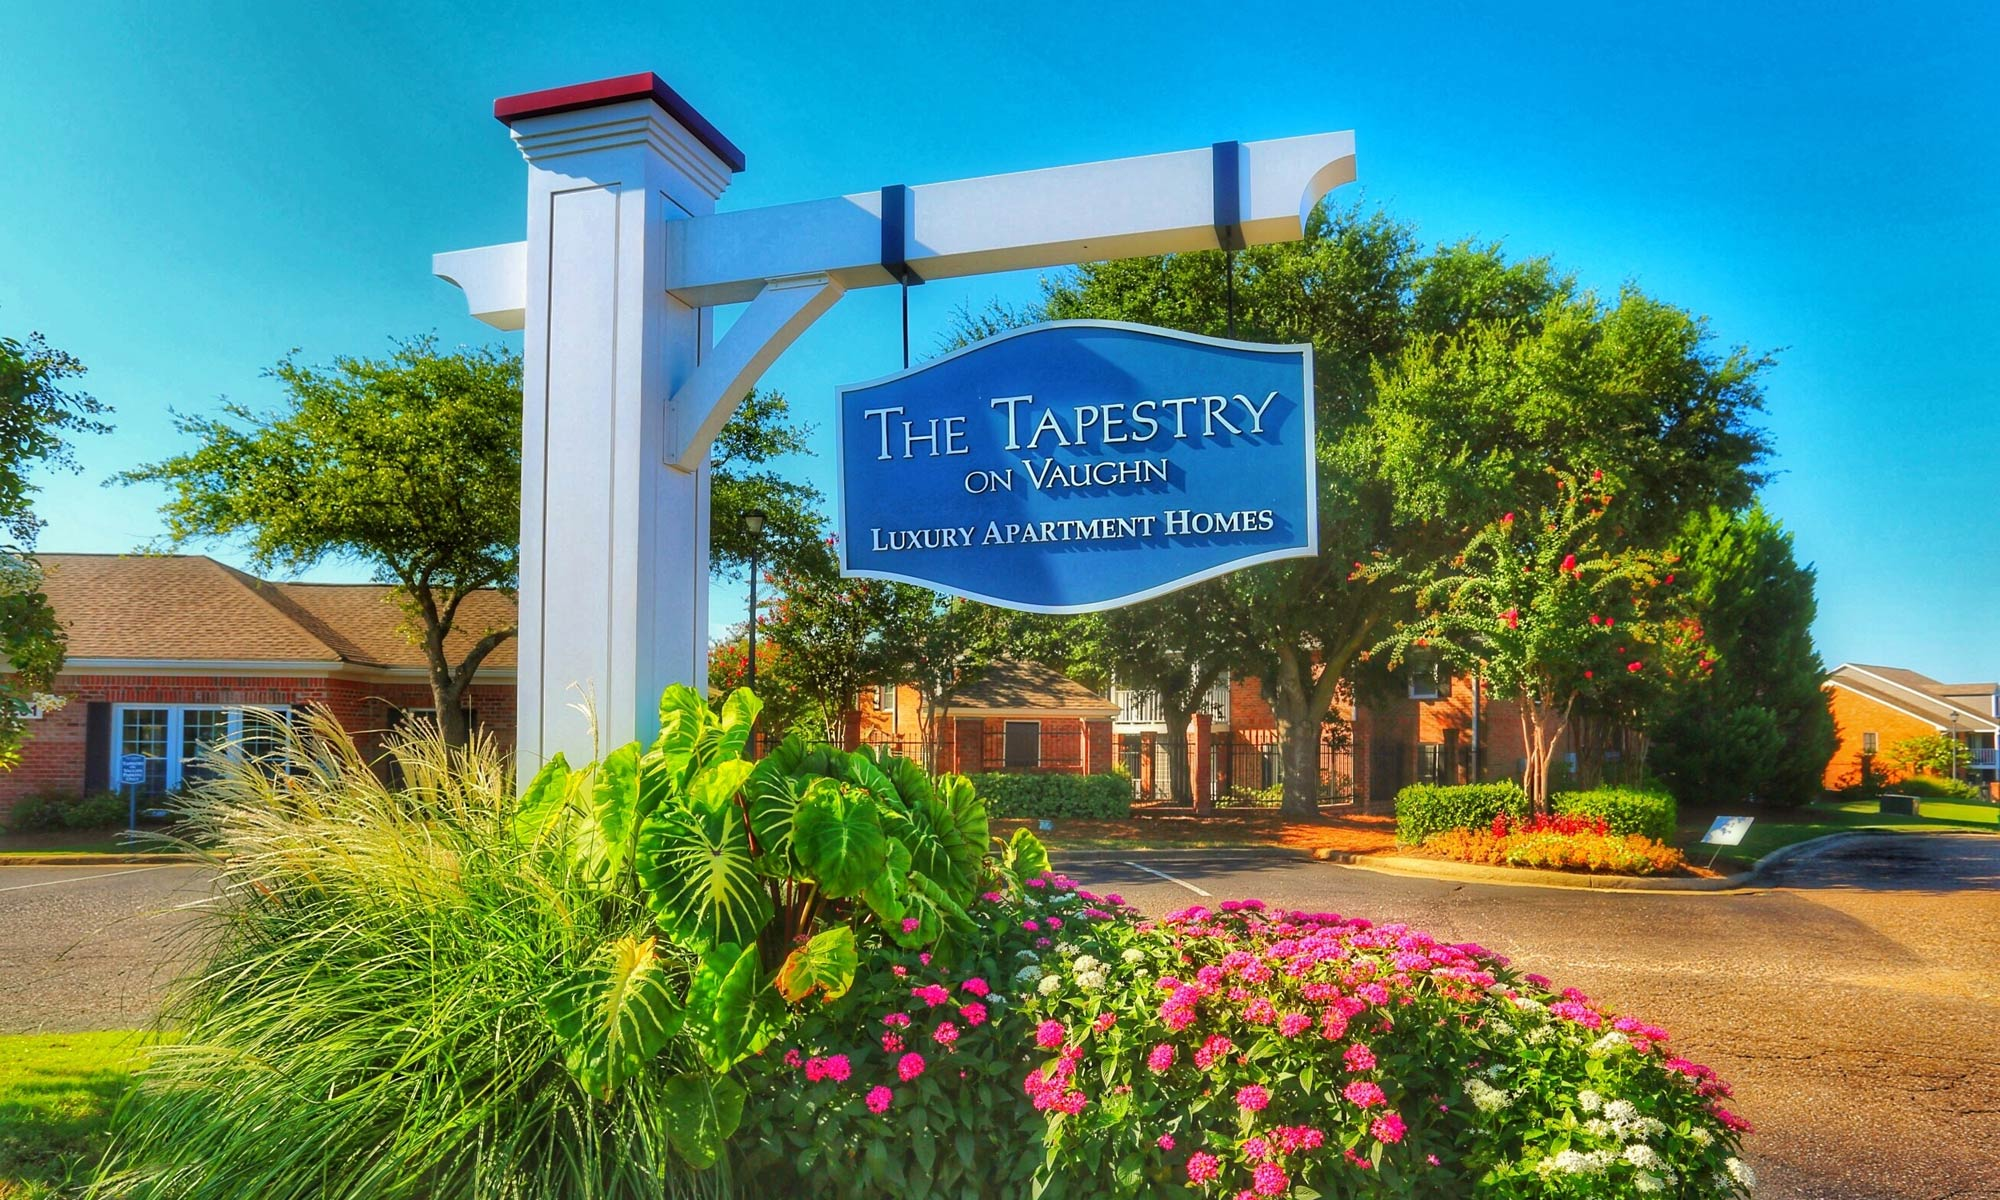 Luxury apartments at The Tapestry on Vaughn in Montgomery, AL